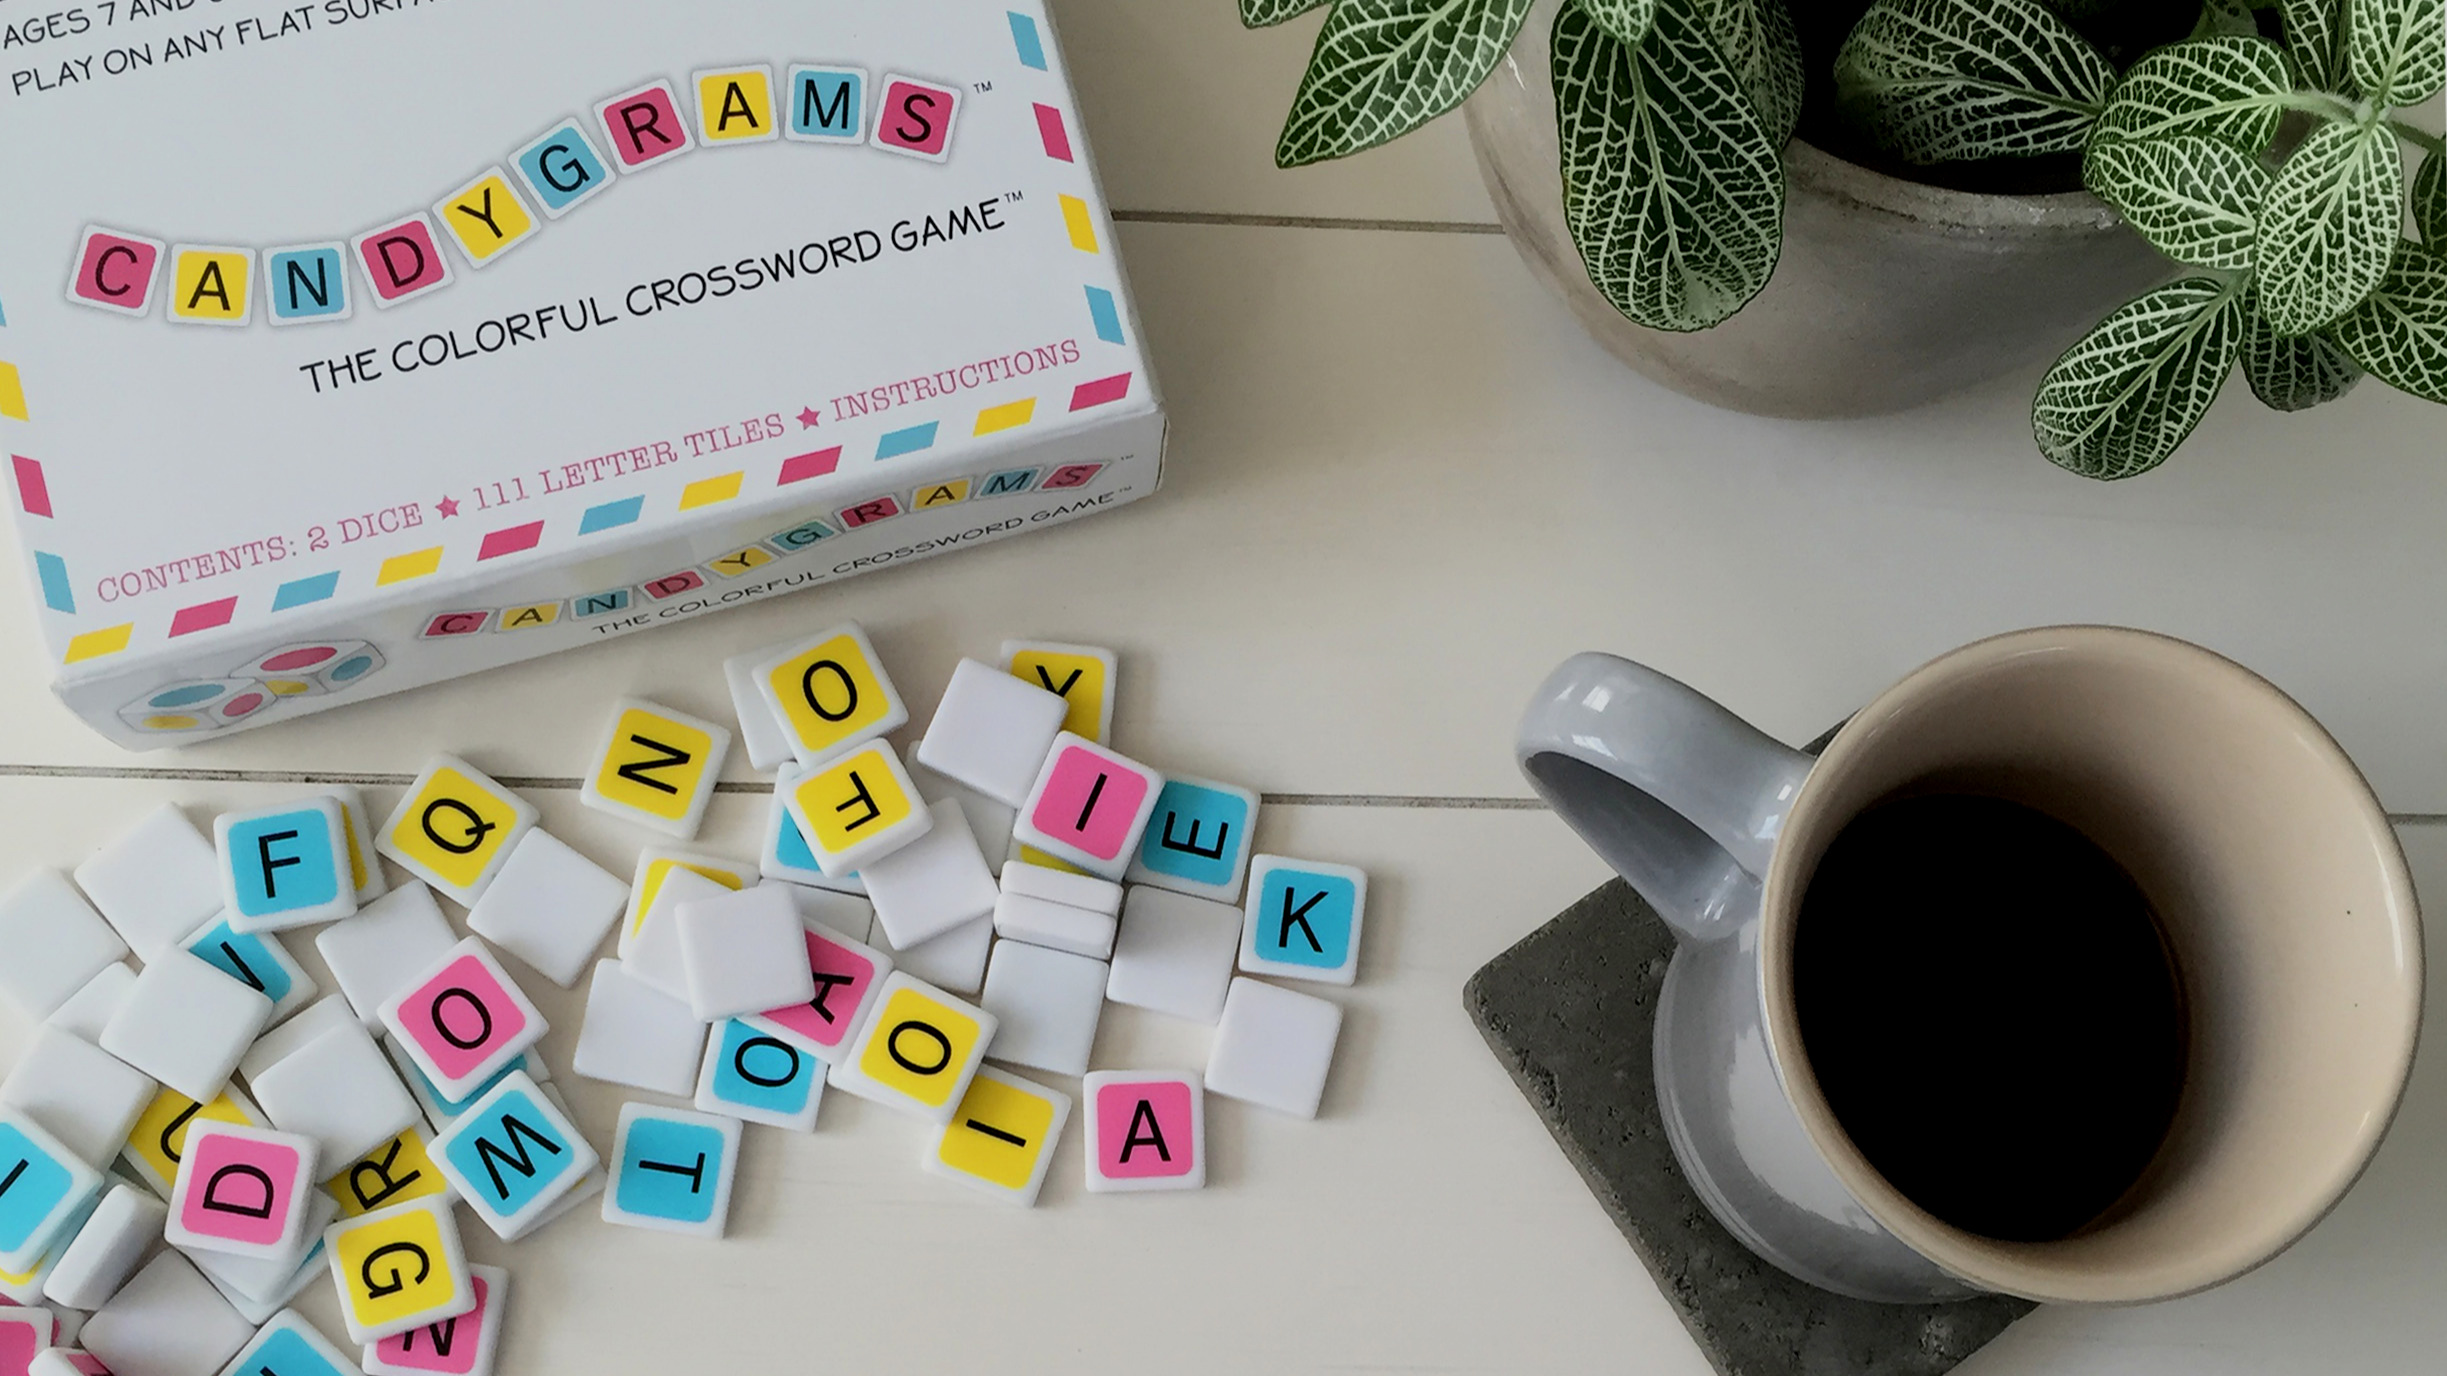 So we created Candygrams. - A relaxed, fun, but strategic word game that can be enjoyed by everyone from kids to word nerds.